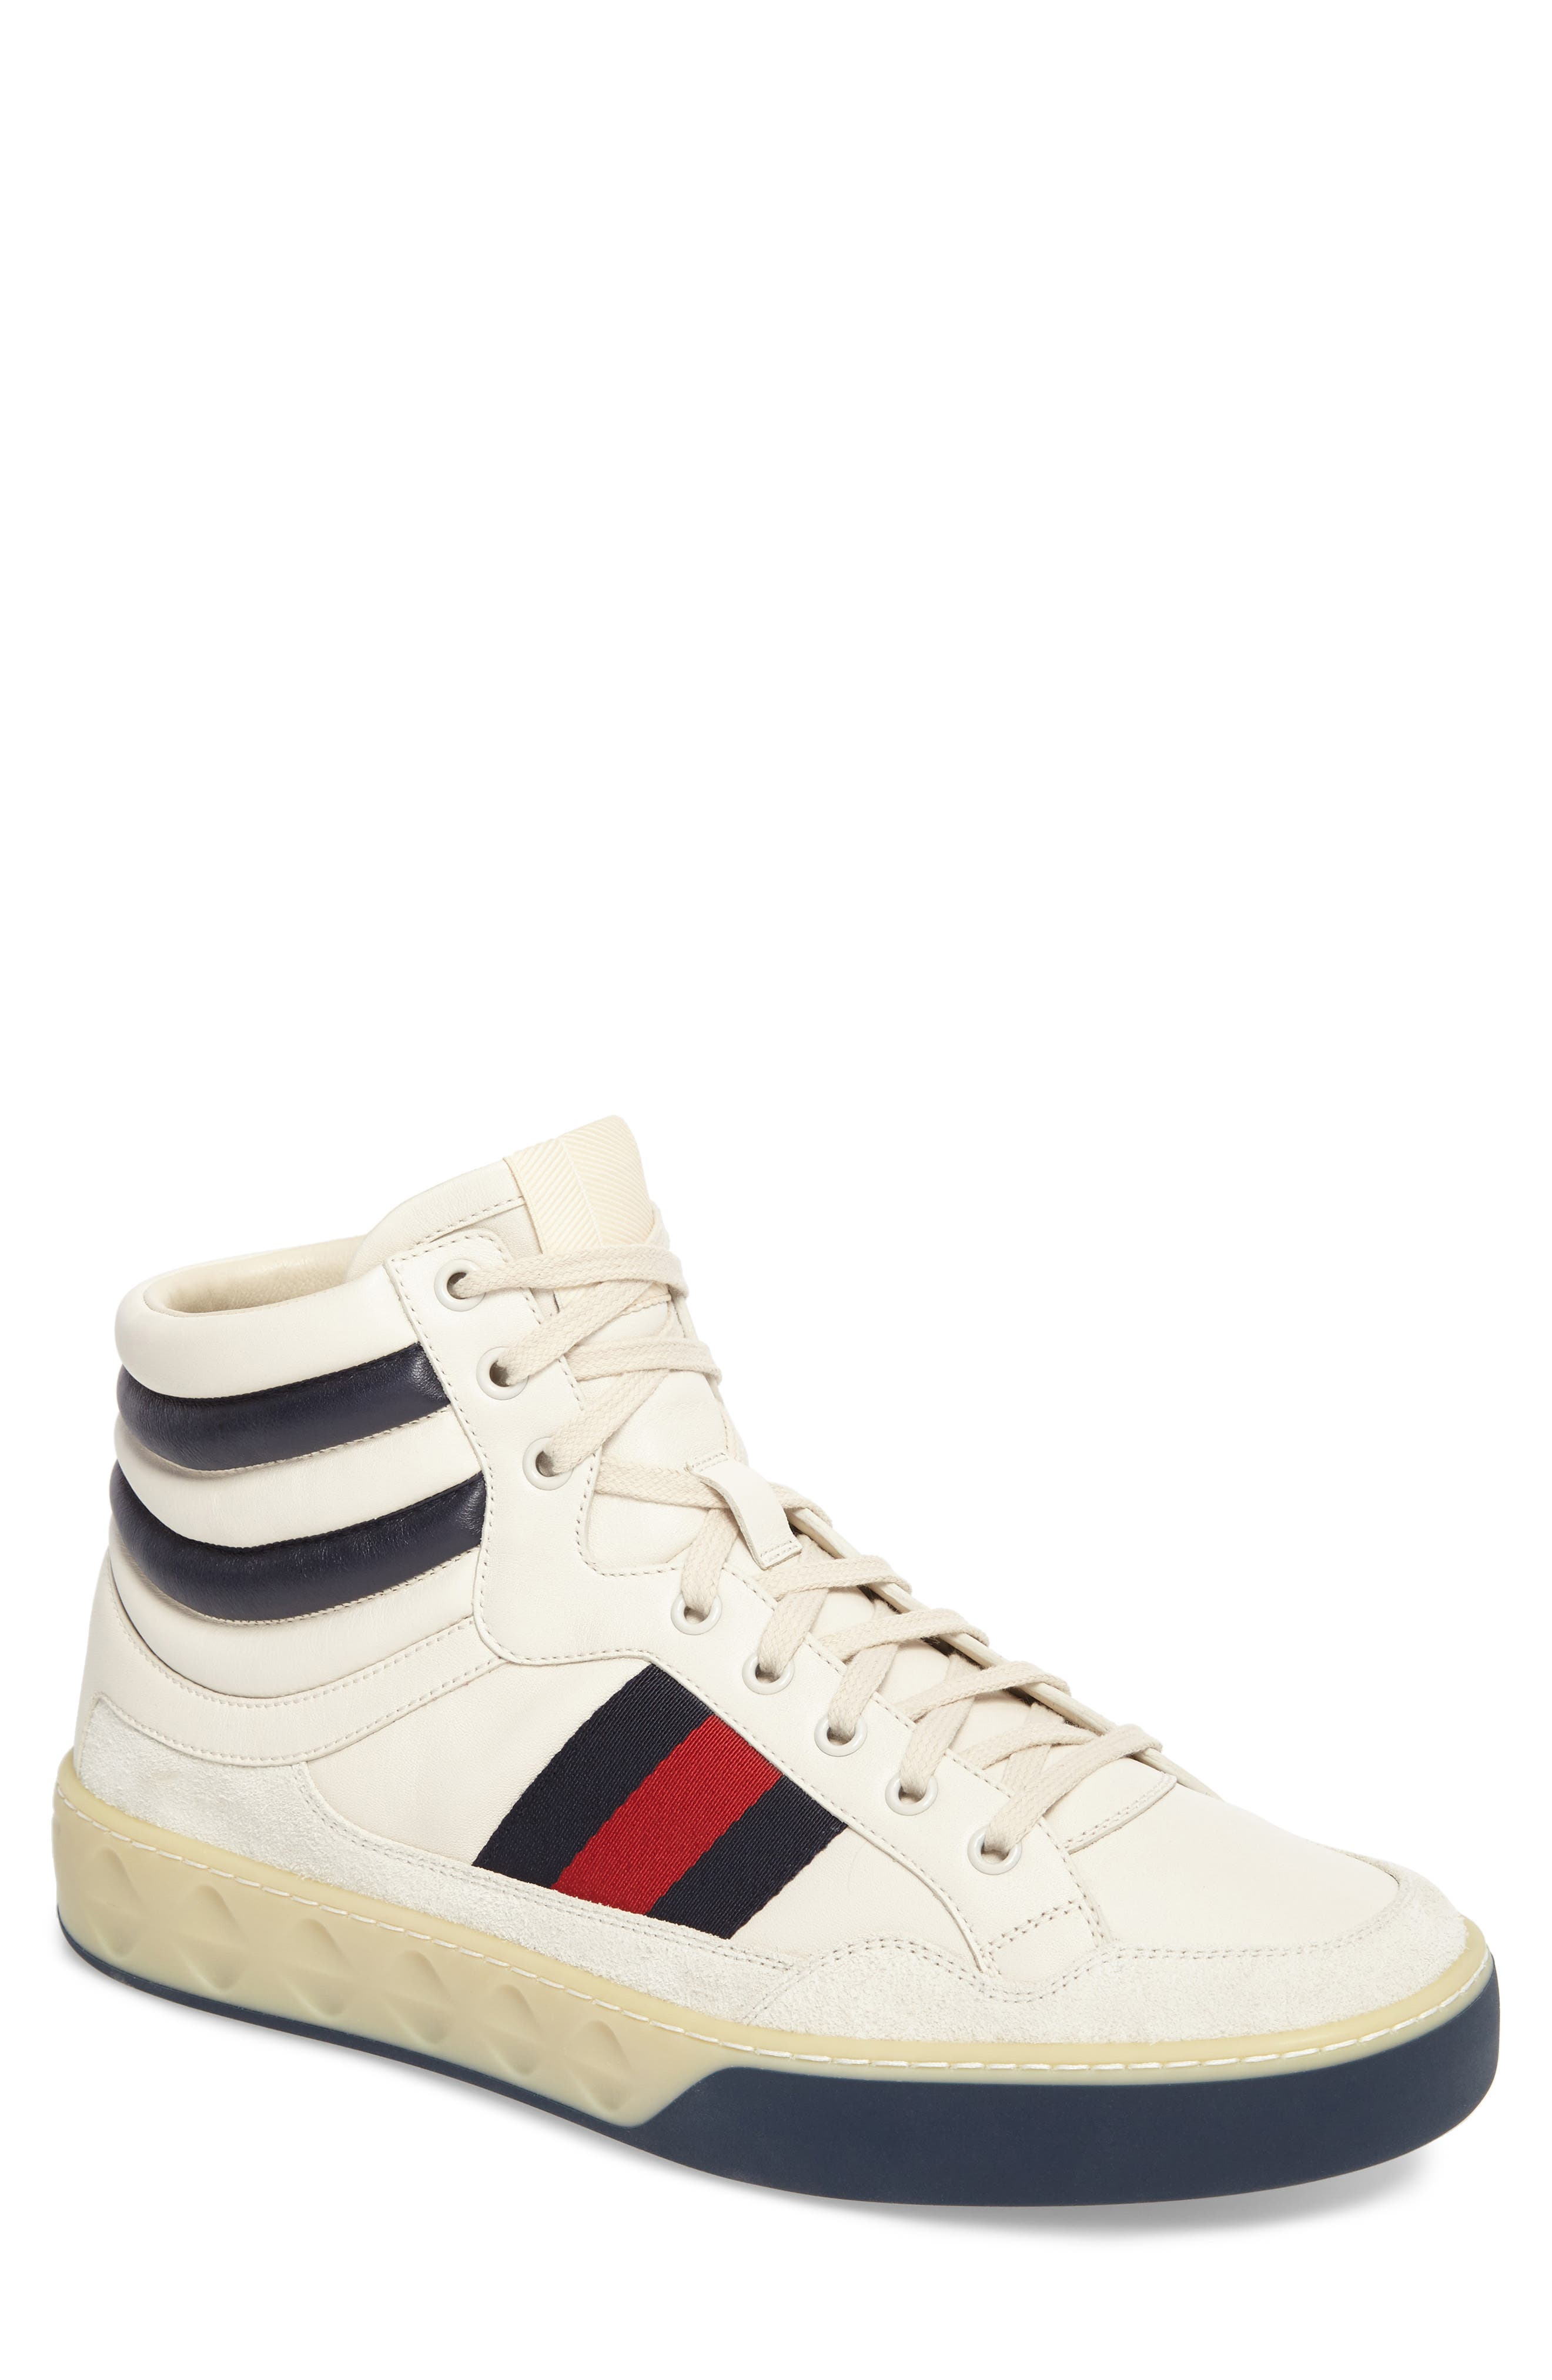 Leather High Top Sneaker,                         Main,                         color, WHITE LEATHER/ SUEDE